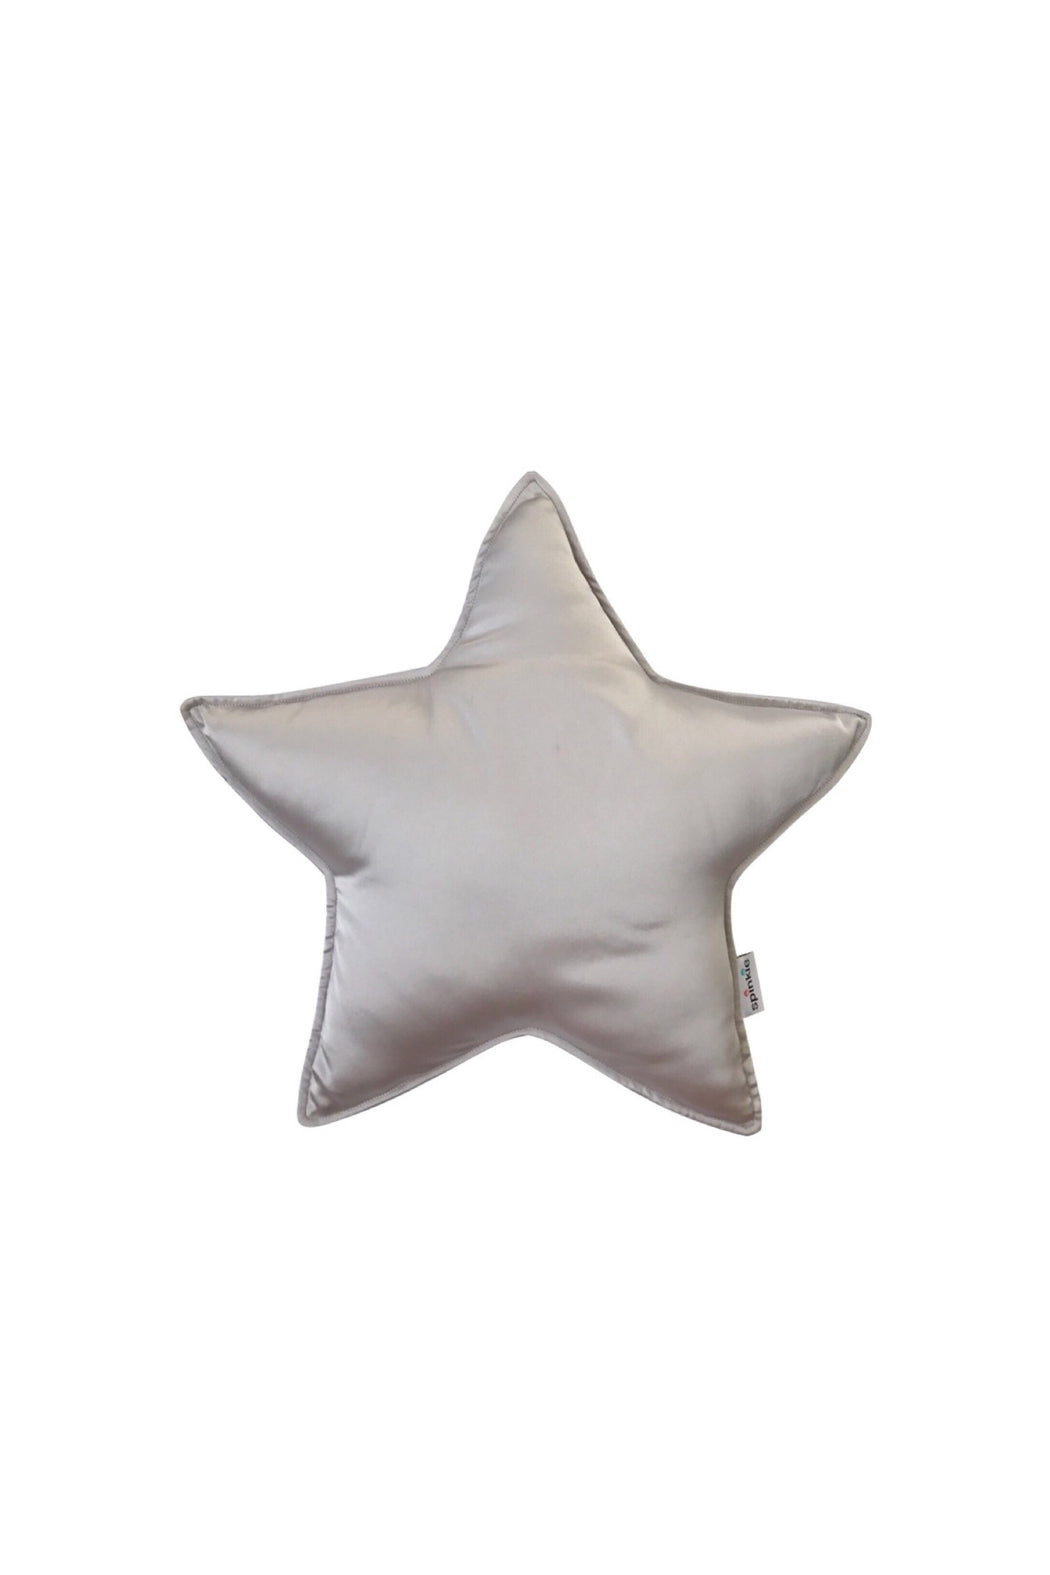 Charmeuse Star Pillow Oyster, Cushion, Spinkie - 3LittlePicks